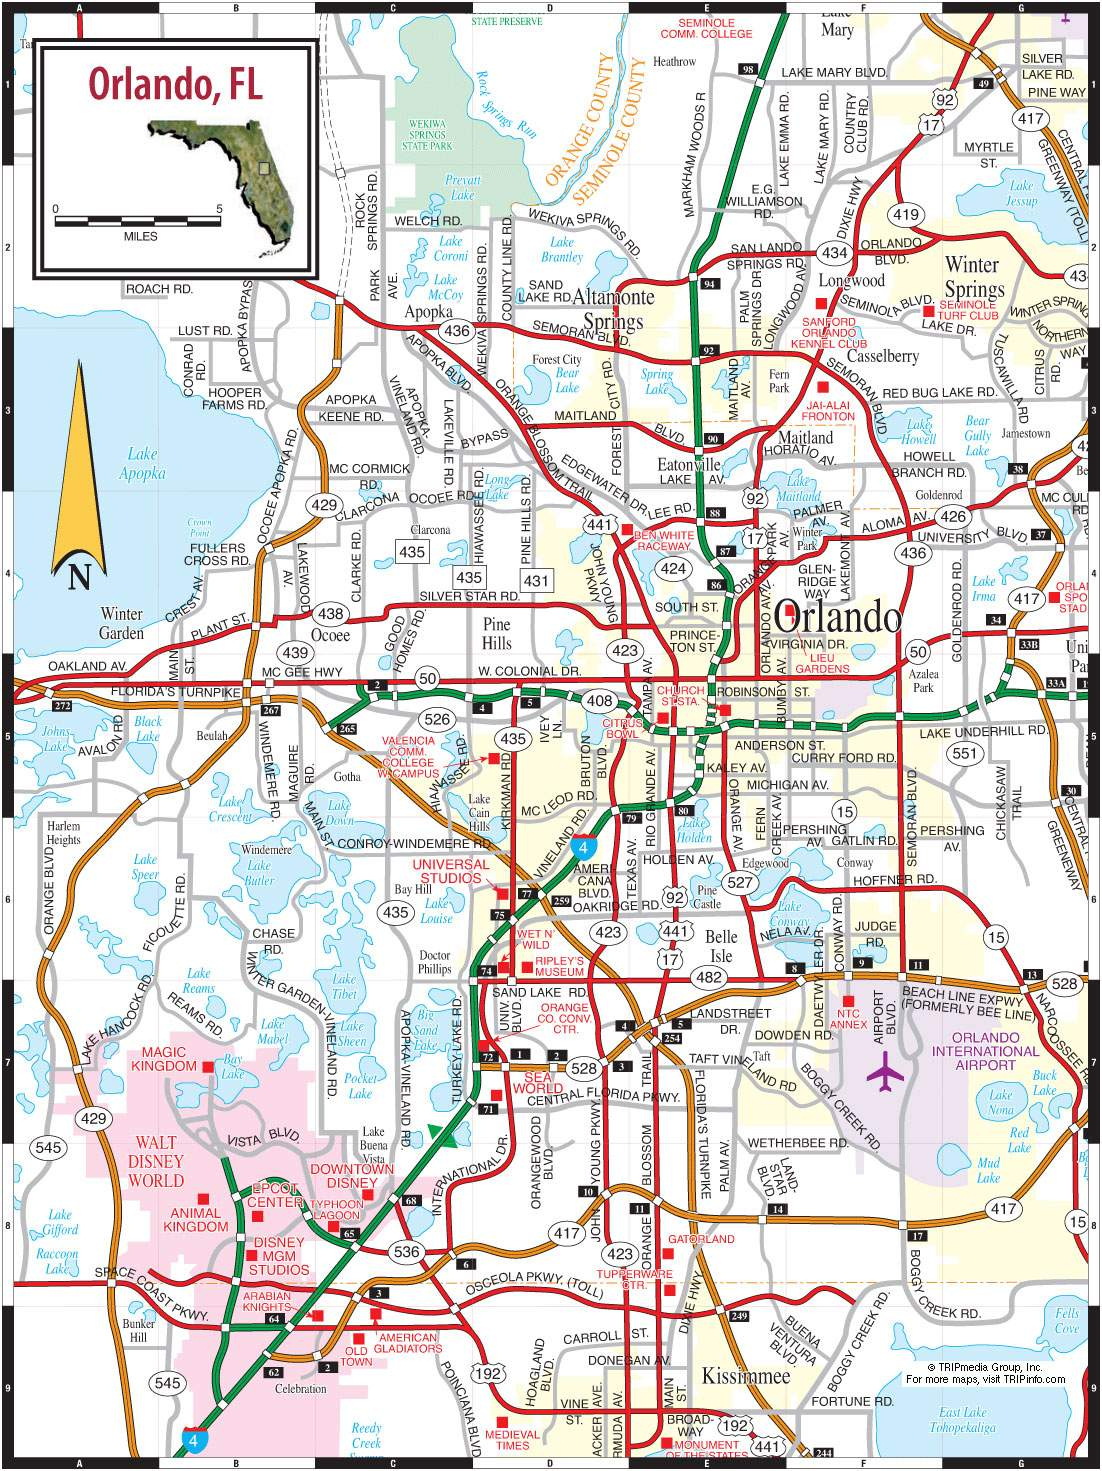 Large Orlando Maps For Free Download And Print | High-Resolution And - Google Maps Orlando Florida